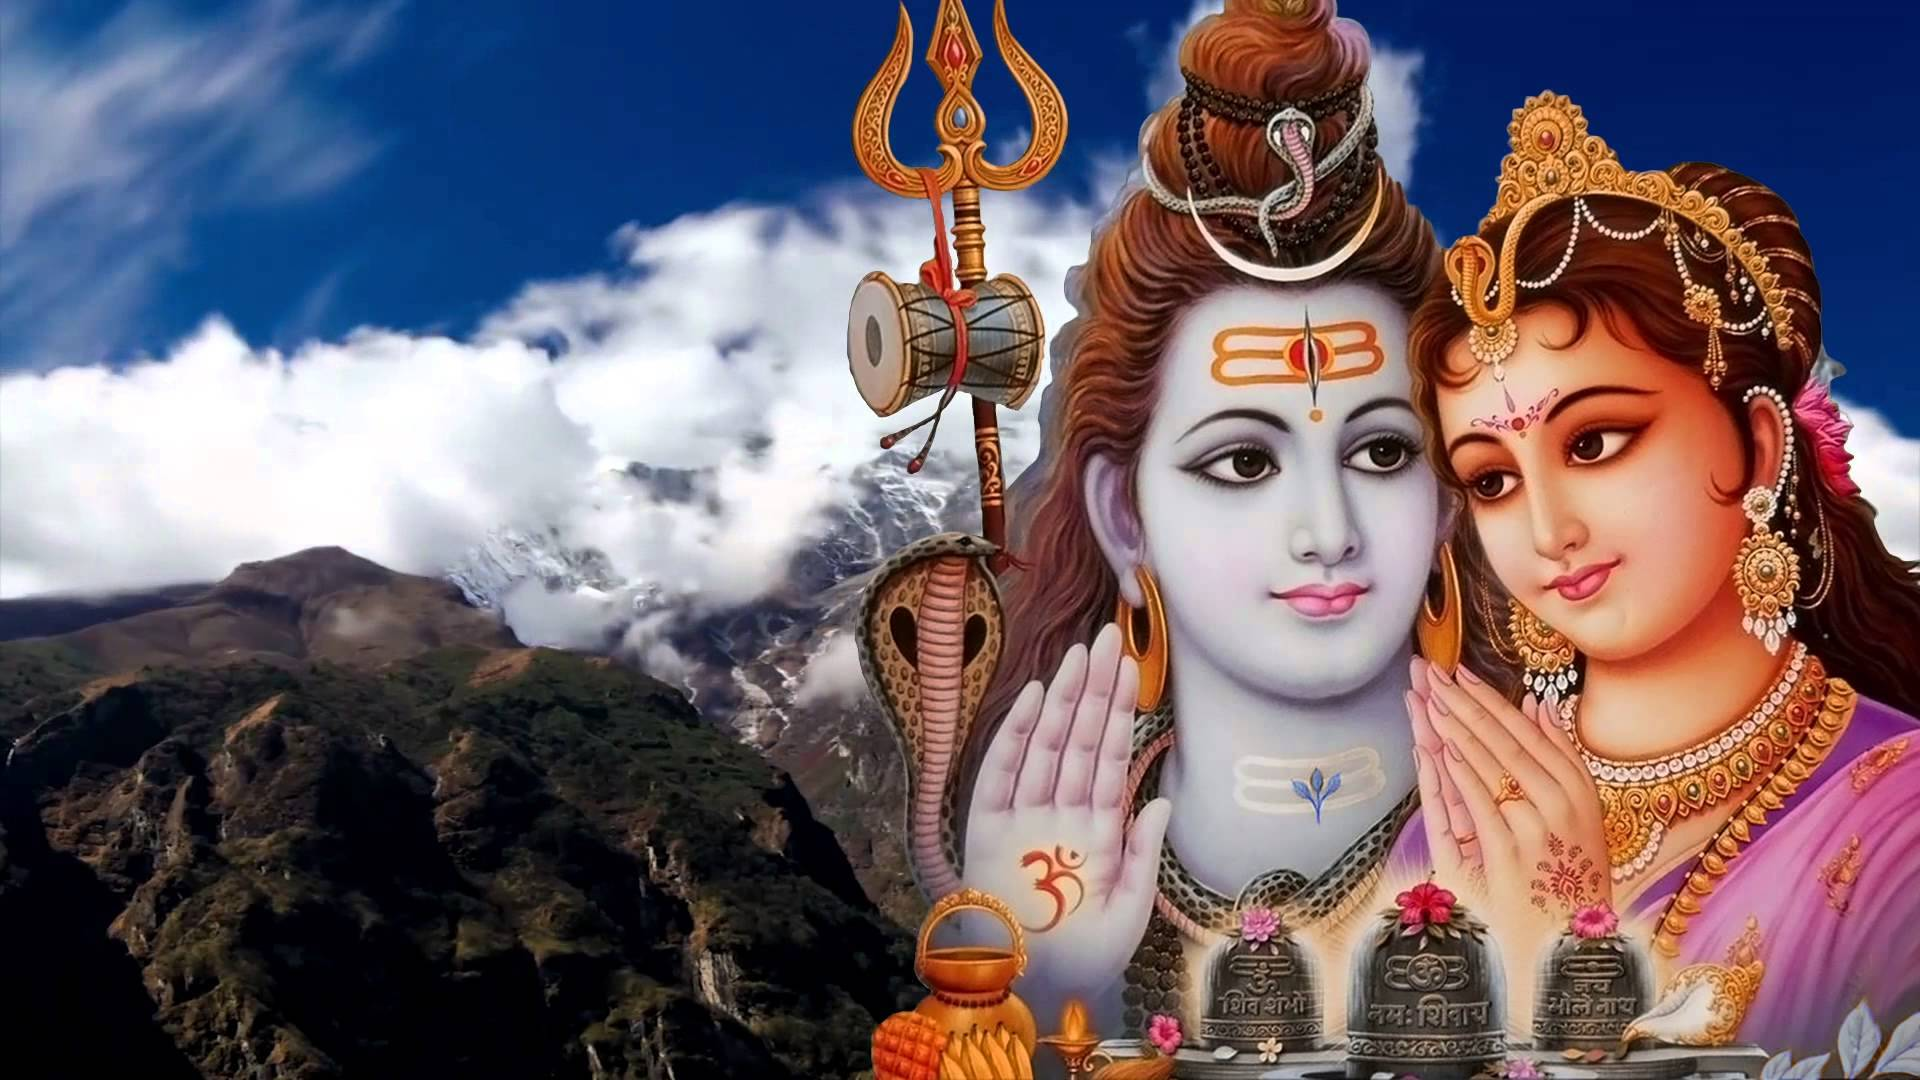 Images Of Shiv Parvati Love Hindu Gods And Goddesses